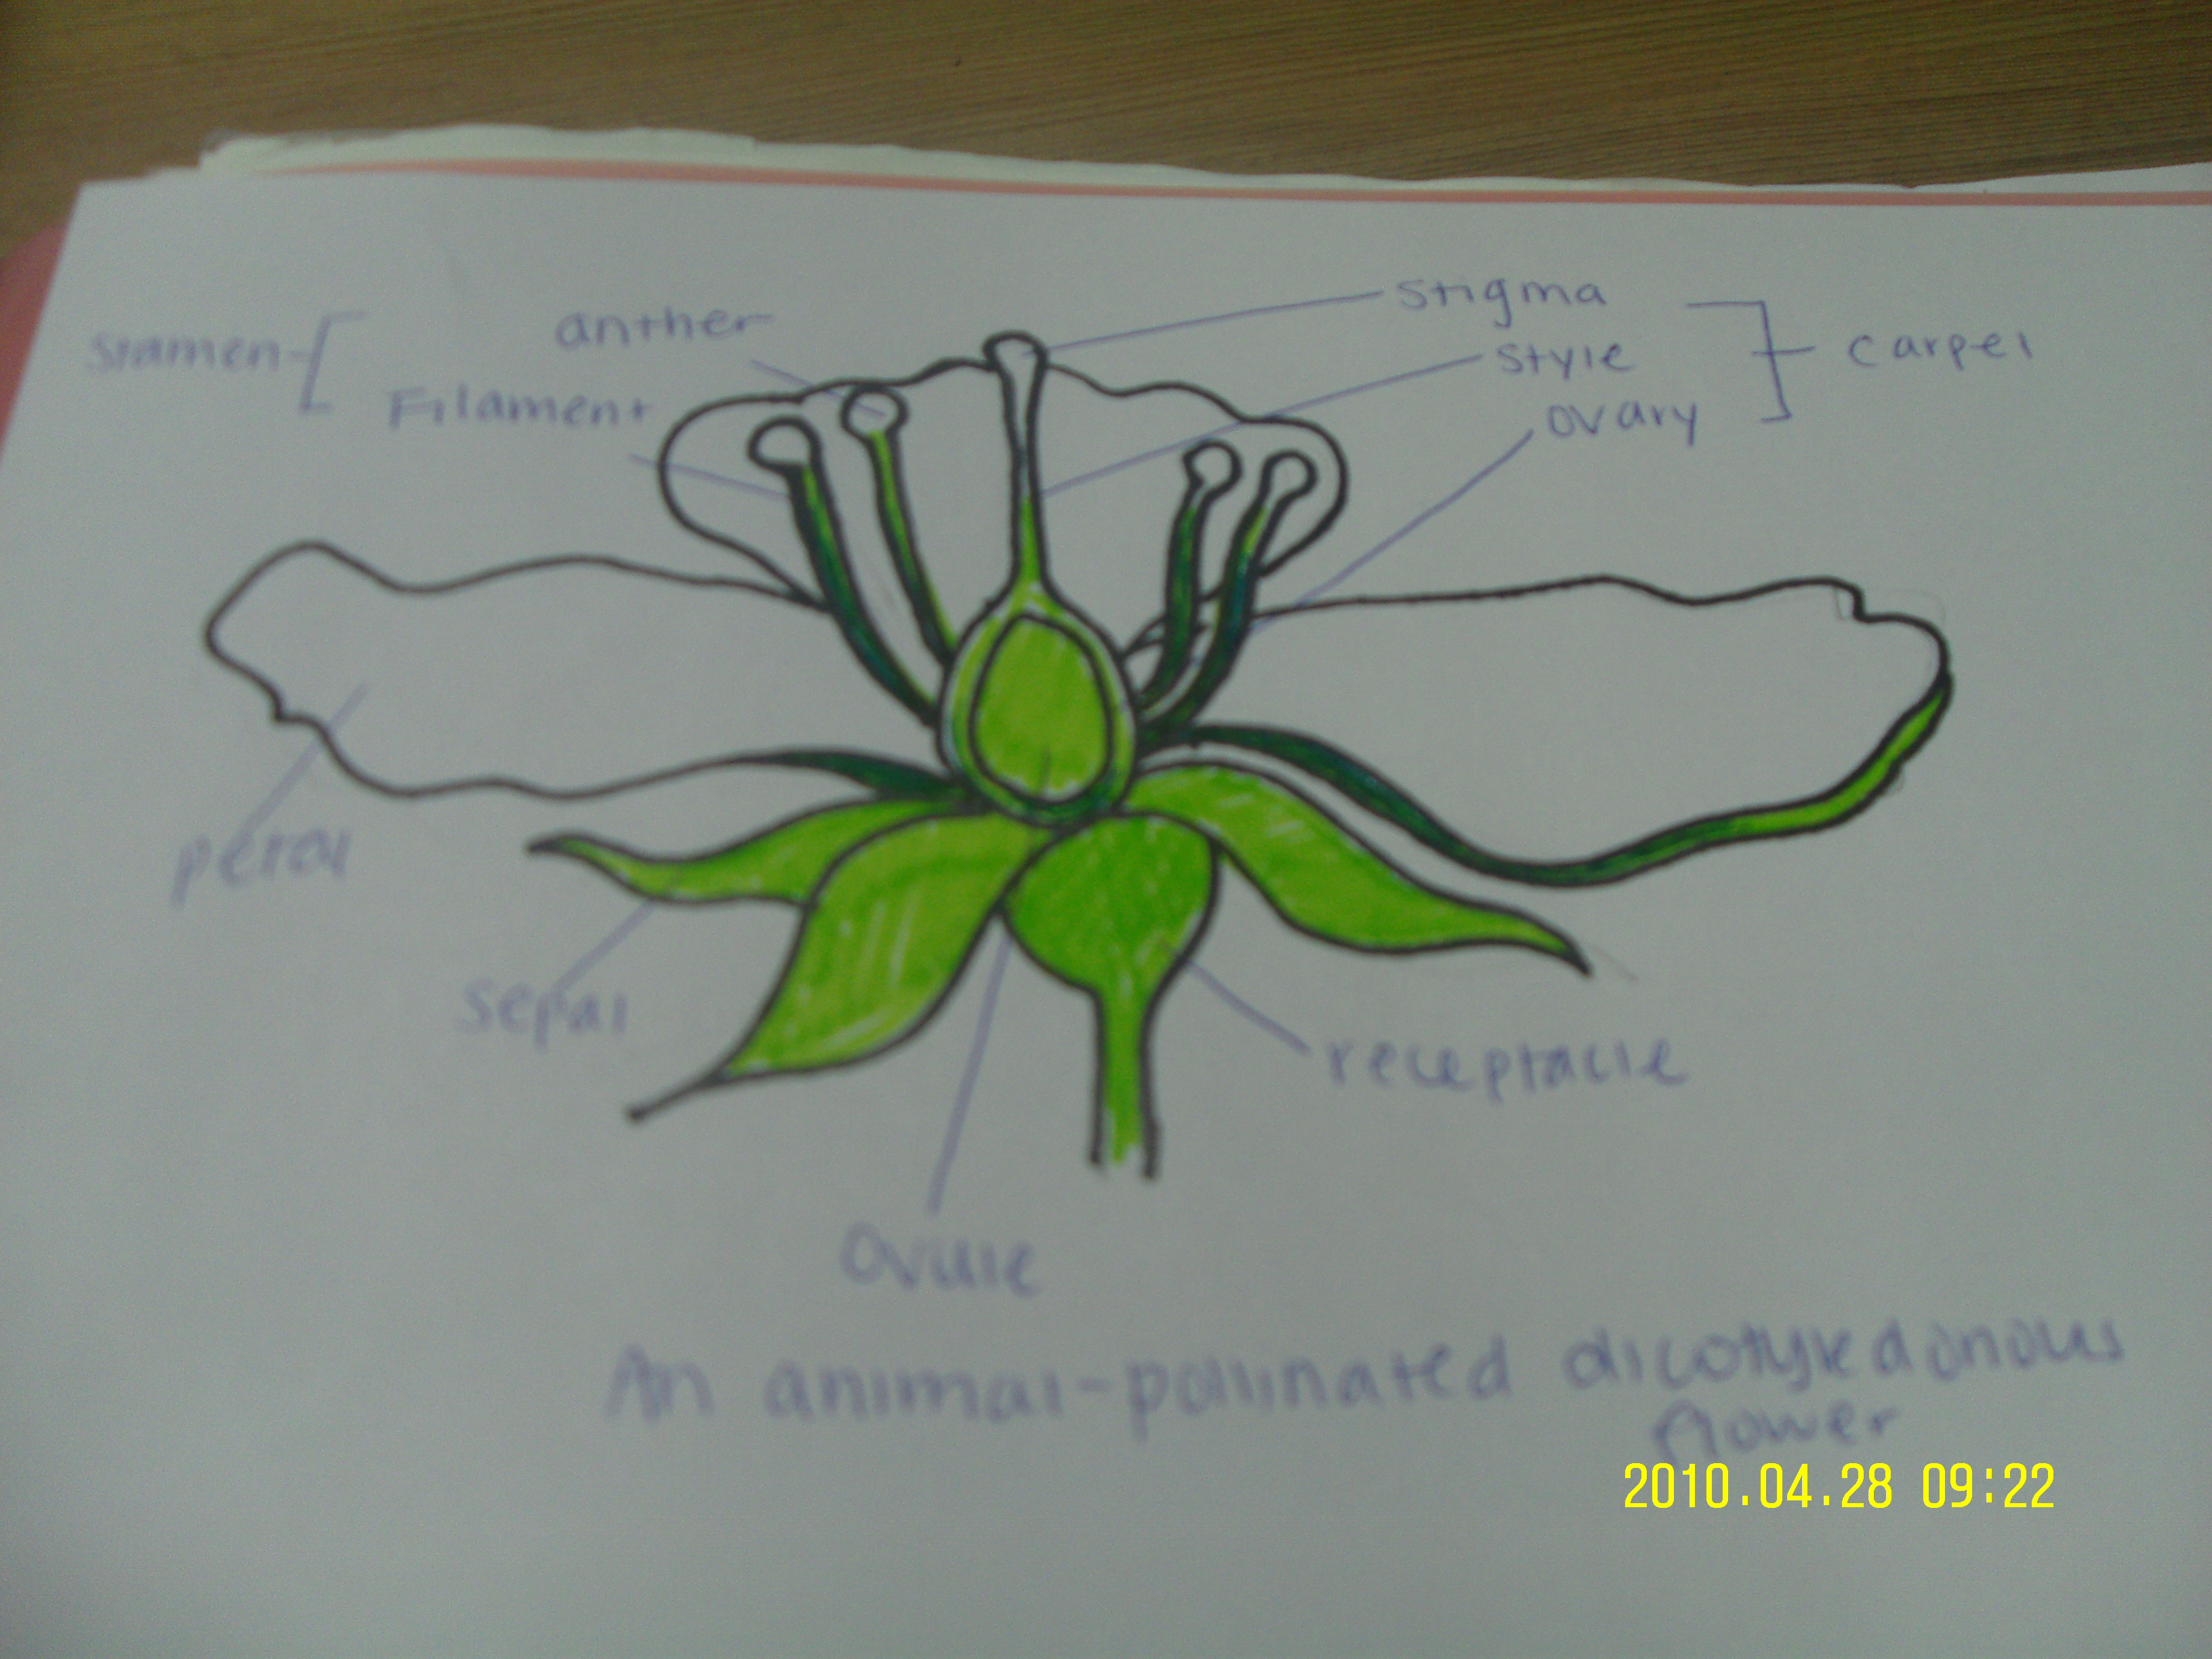 12knights is a dp biology wiki 931 draw and label a diagram 931 draw and label a diagram ccuart Gallery